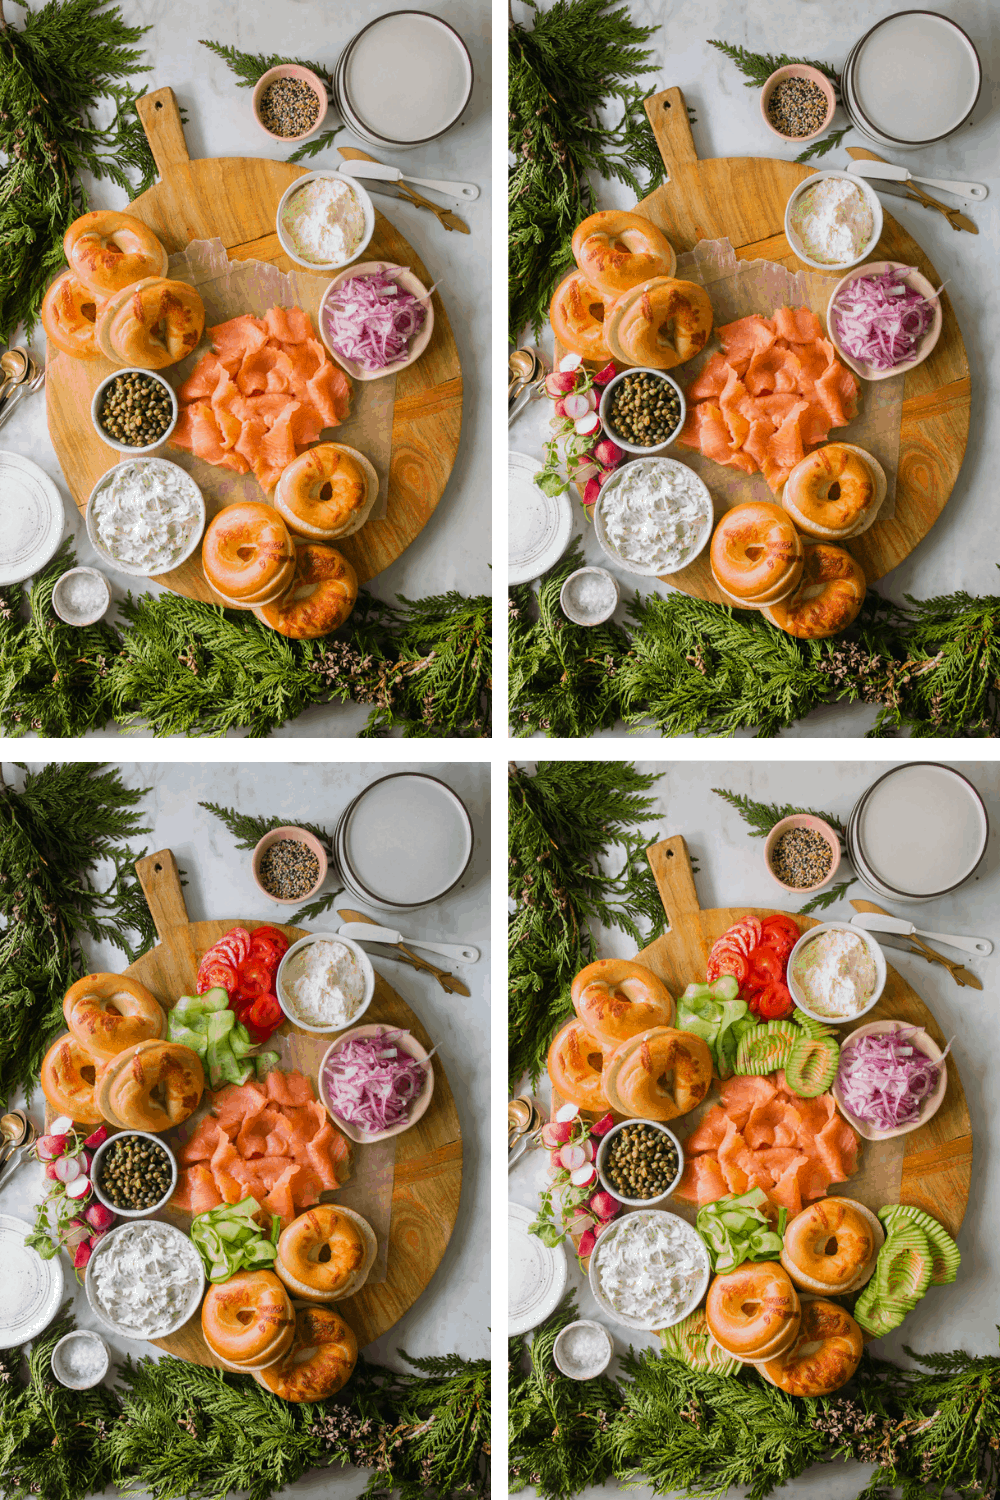 4 images of putting vegetables, dips, and toppings on a wood board